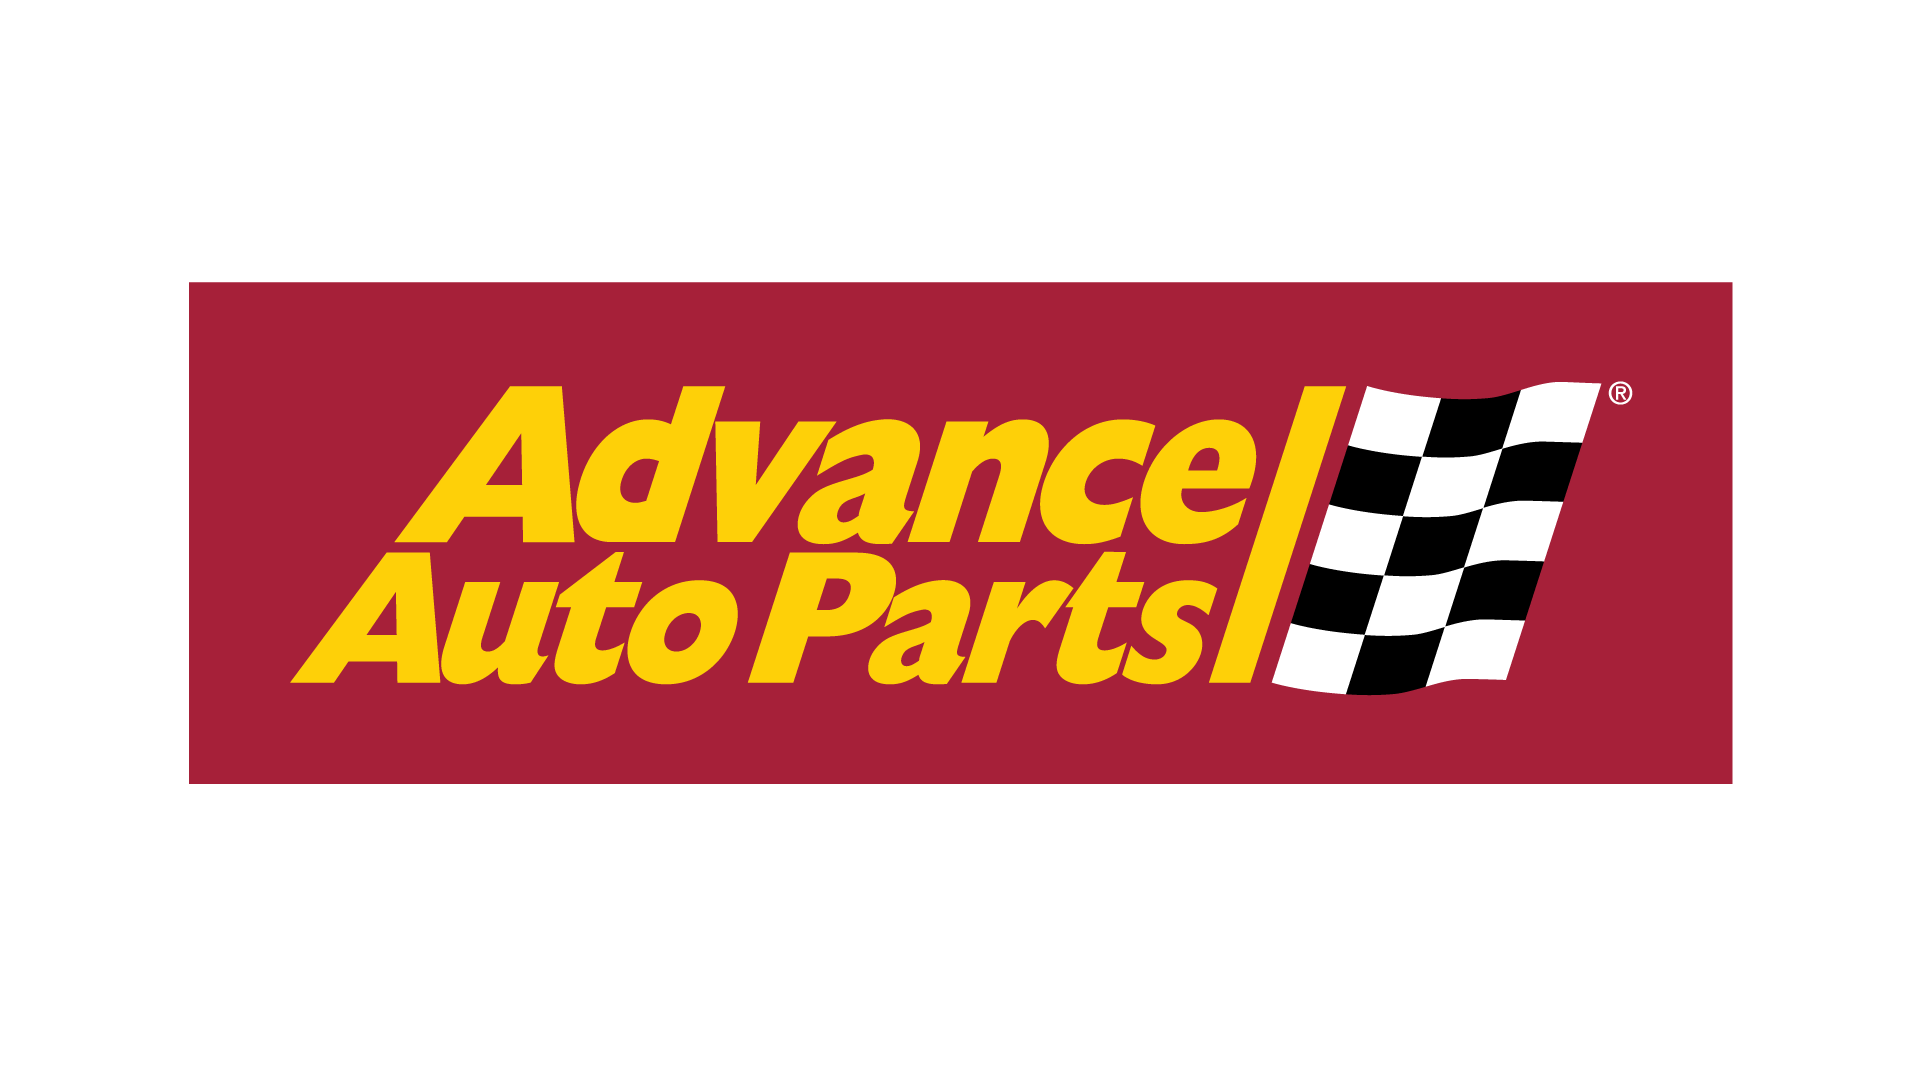 Advance Auto Parts Number >> 25 Off Advance Auto Parts Coupons Promo Codes Deals 2019